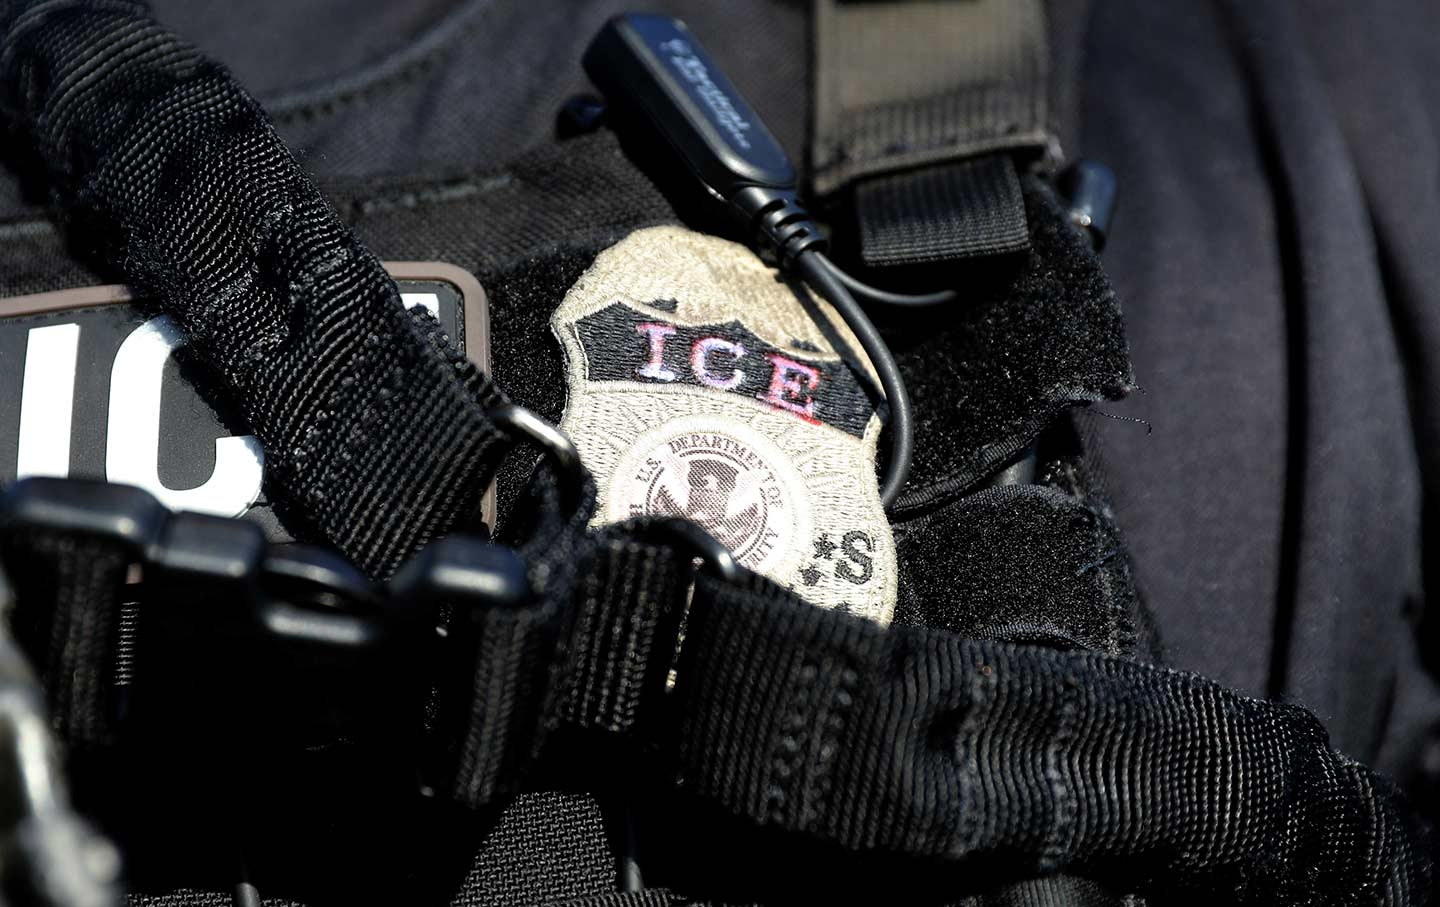 The badge of a U.S. Immigration and Customs Enforcement (ICE) officer.